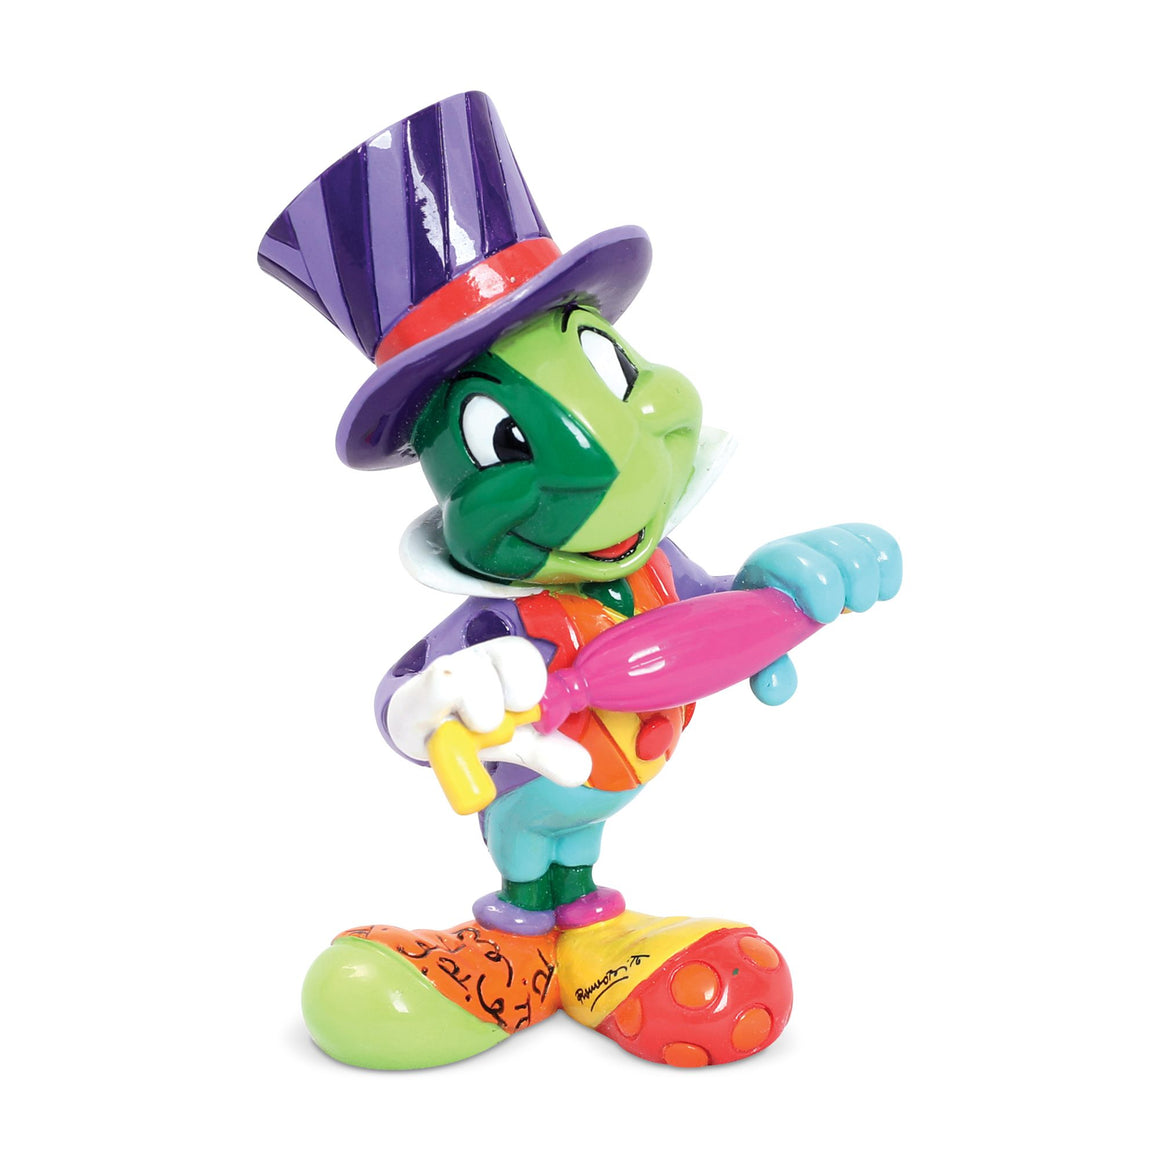 Jiminy Cricket Mini Figurine by Disney Britto